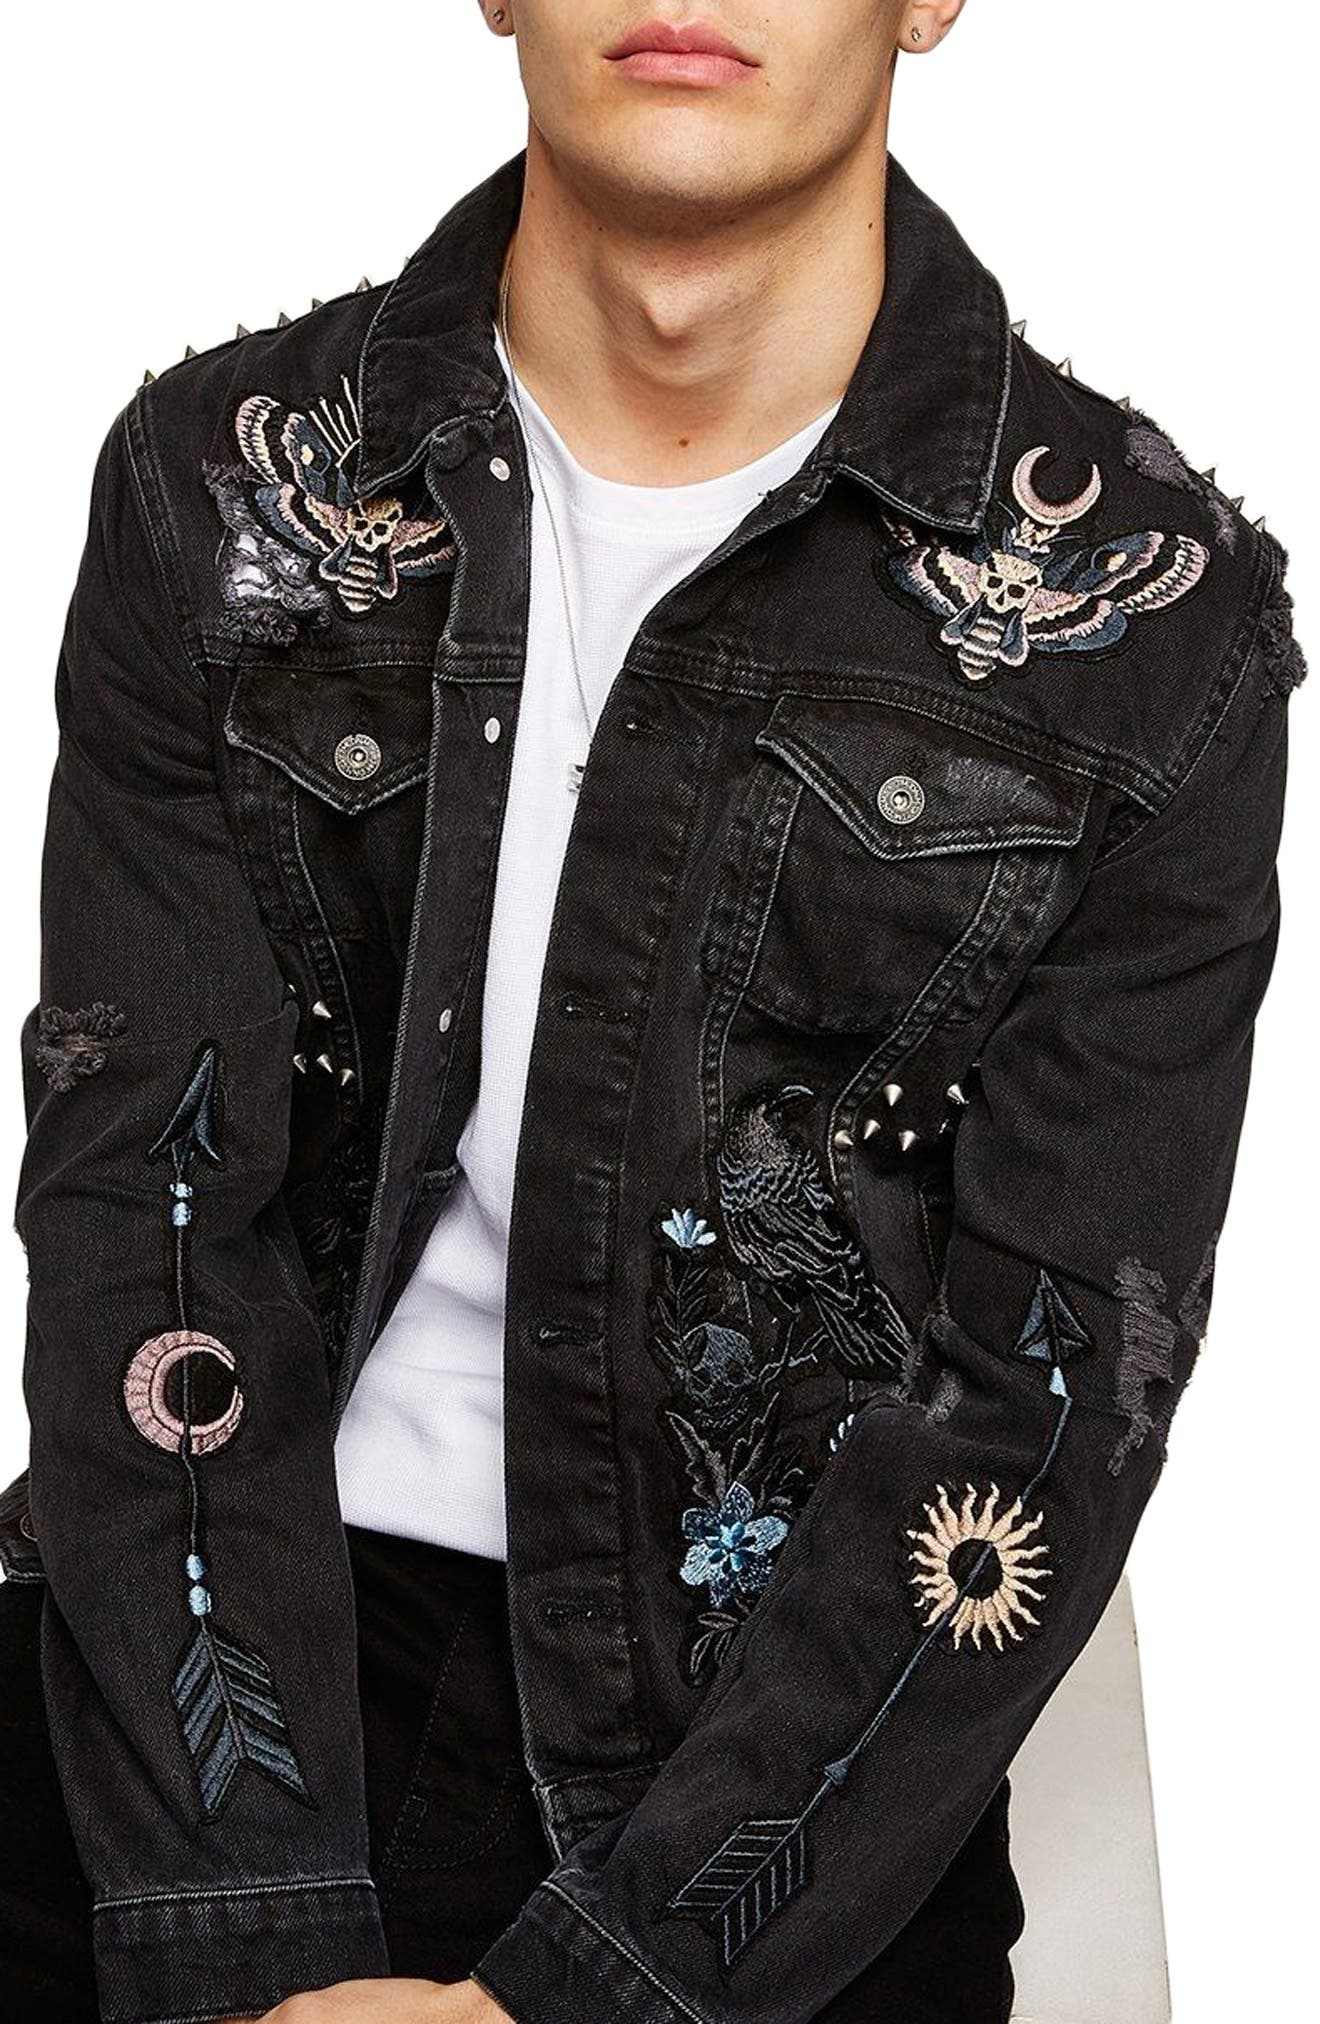 Sleepy Hollow Slim Fit Denim Jacket with Patches,                             Main thumbnail 1, color,                             Black Multi